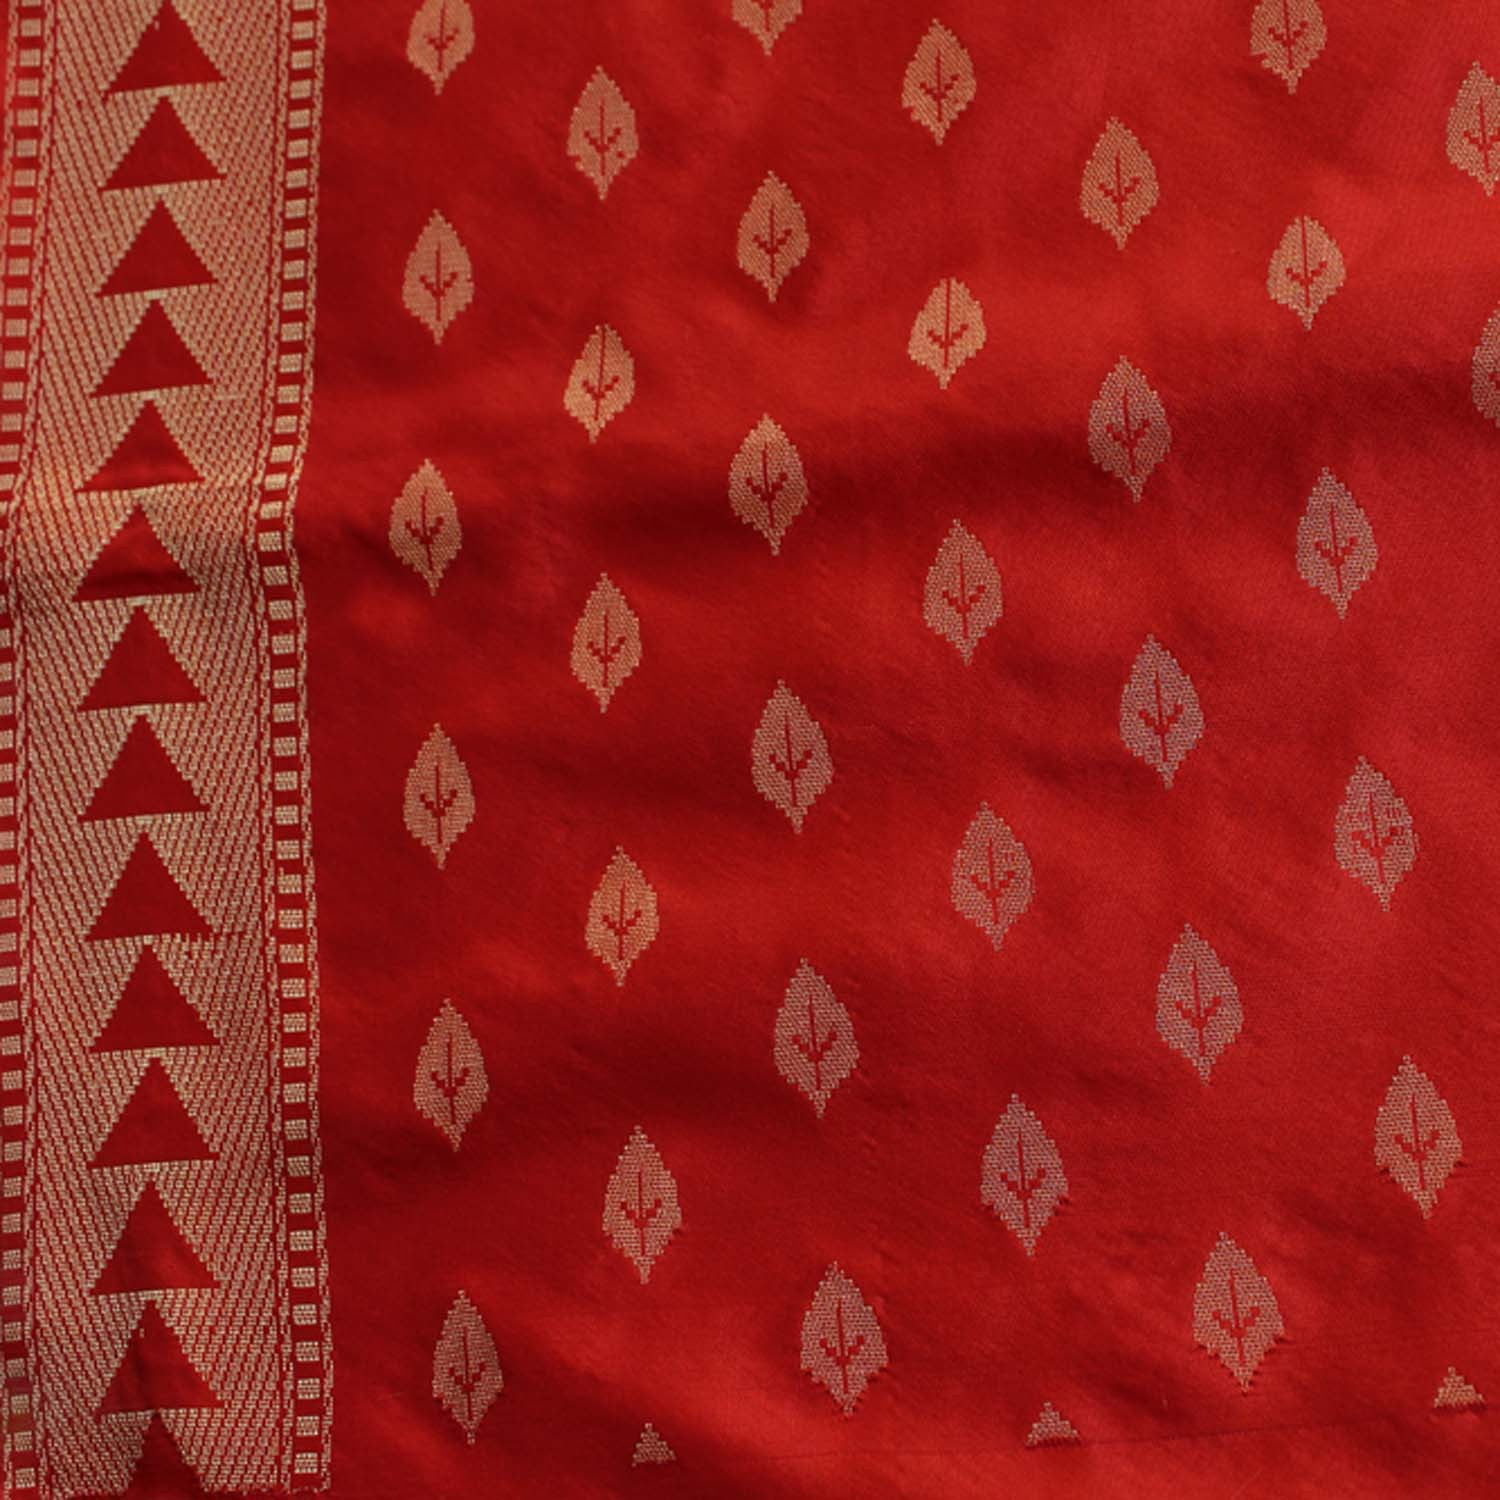 Orange-Indian Pink Pure Katan Silk Banarasi Handloom Saree - Tilfi - 6